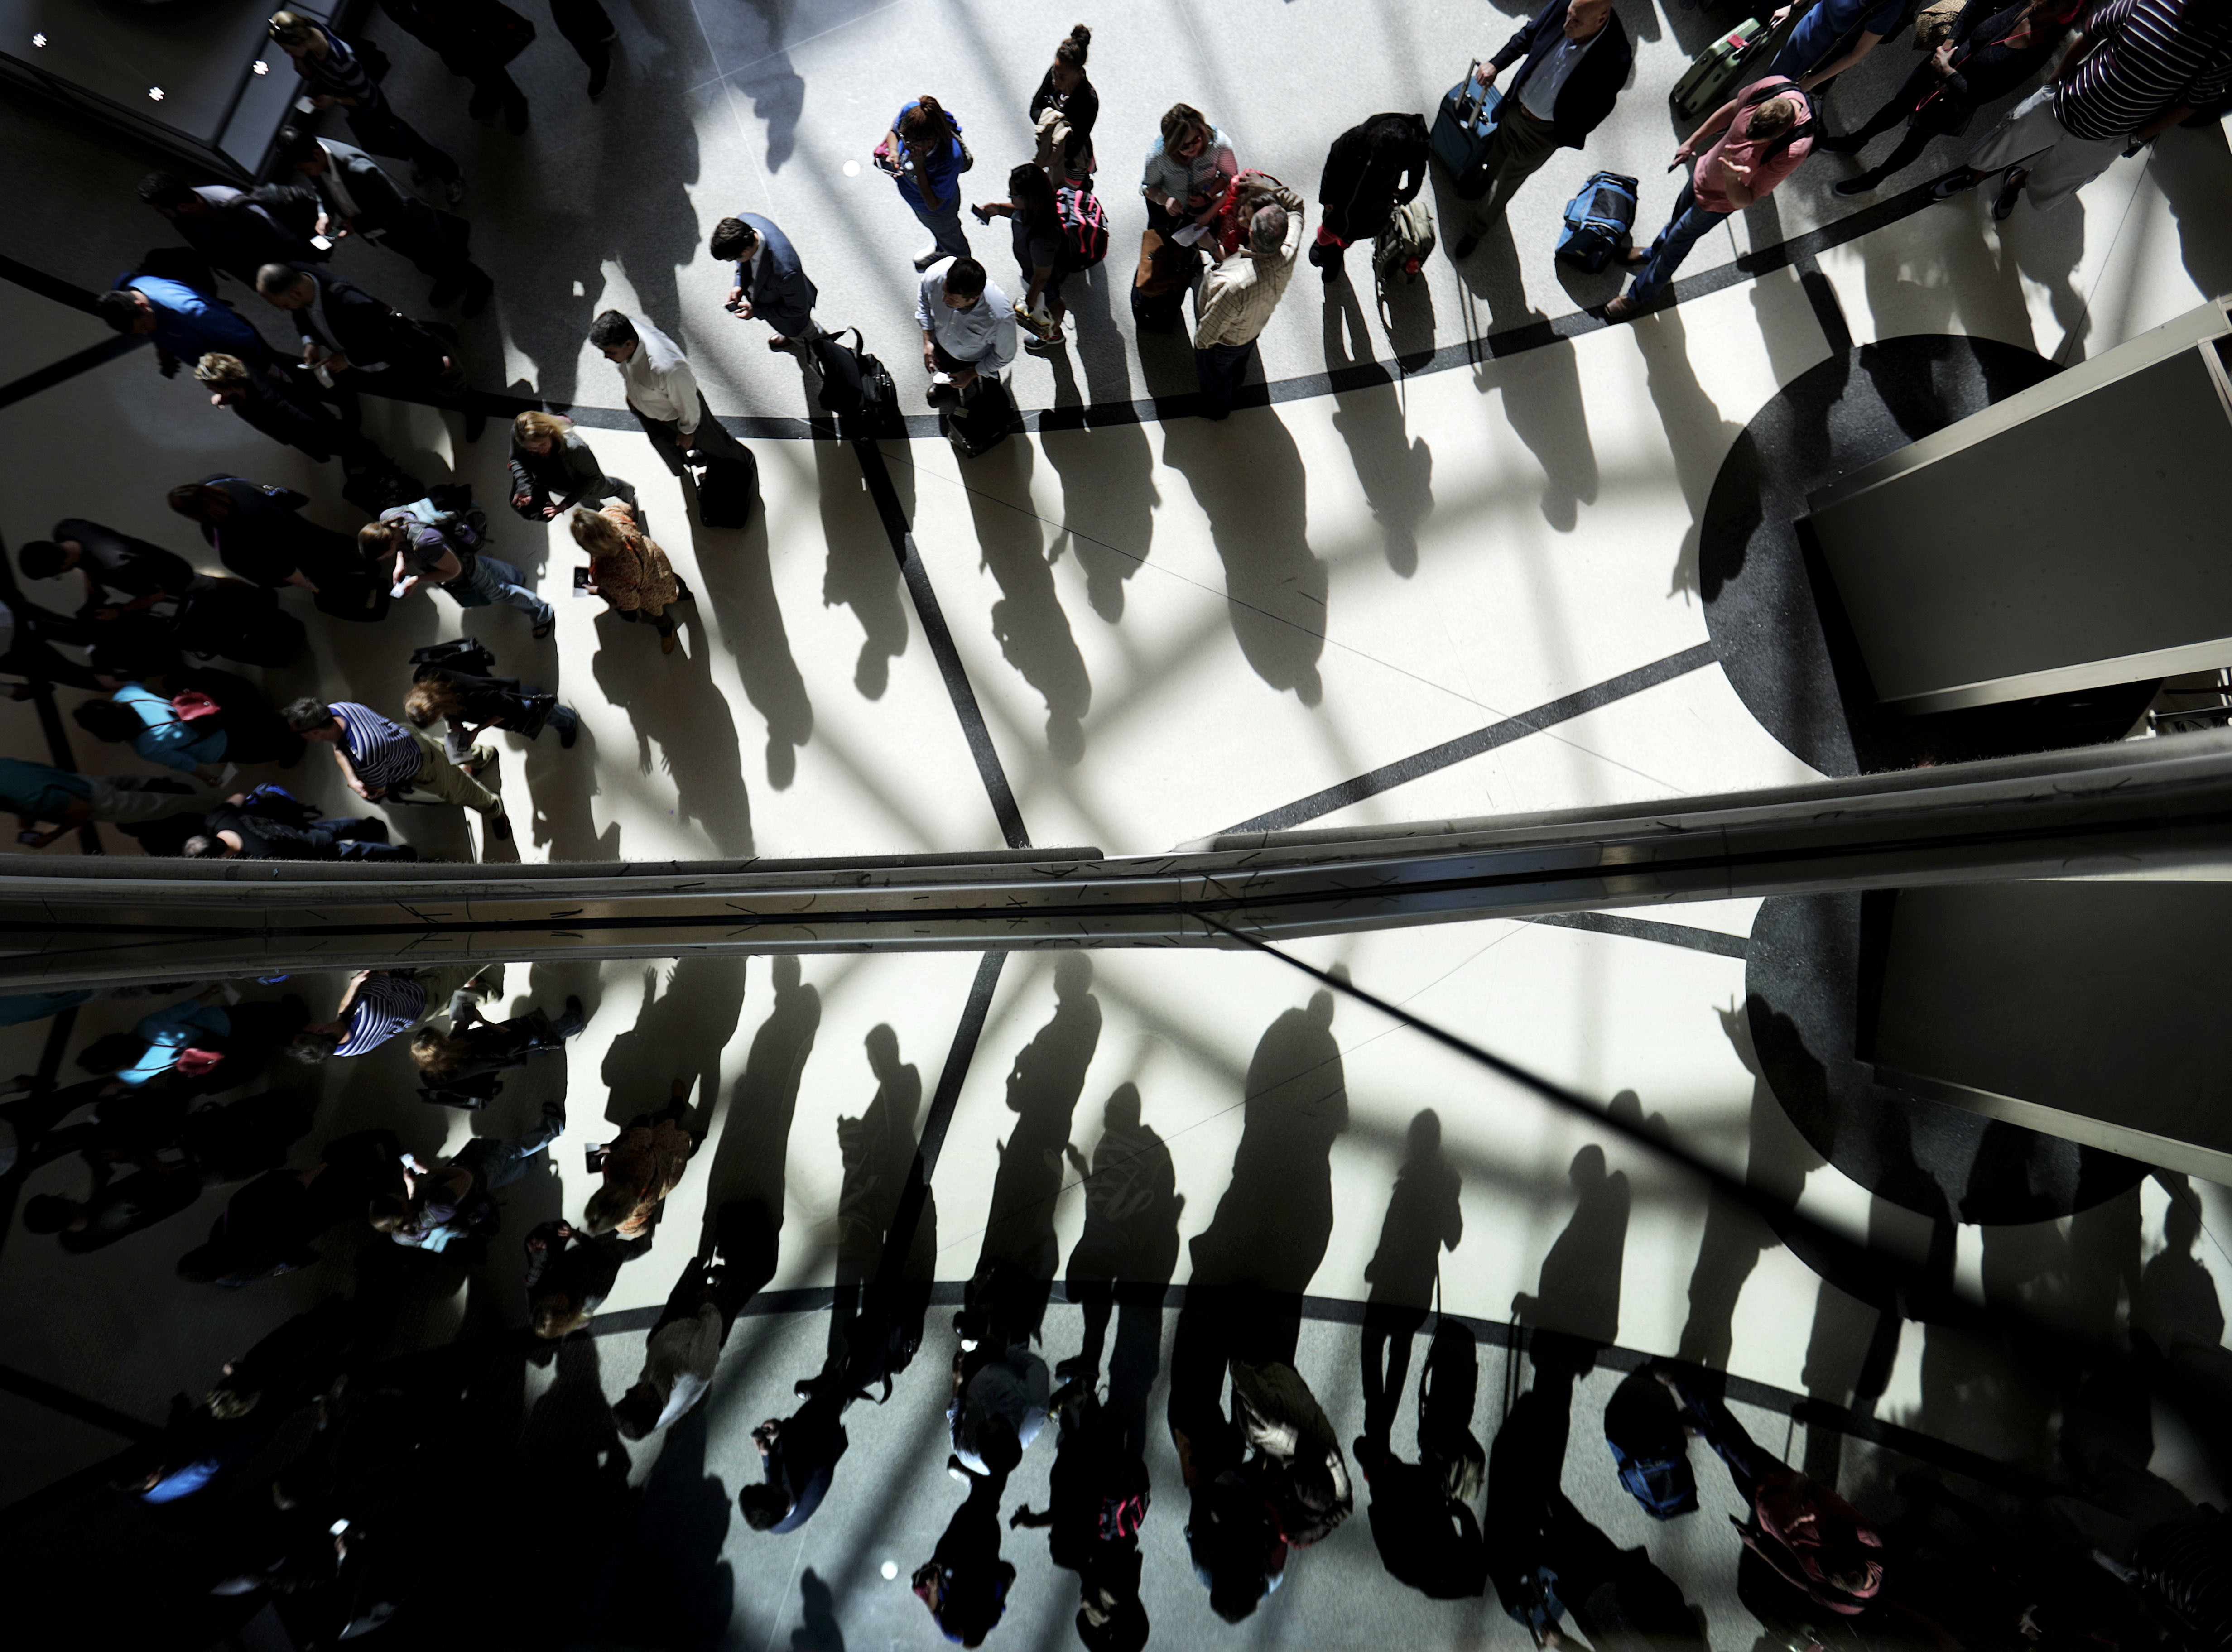 Airport Security-Long Lines